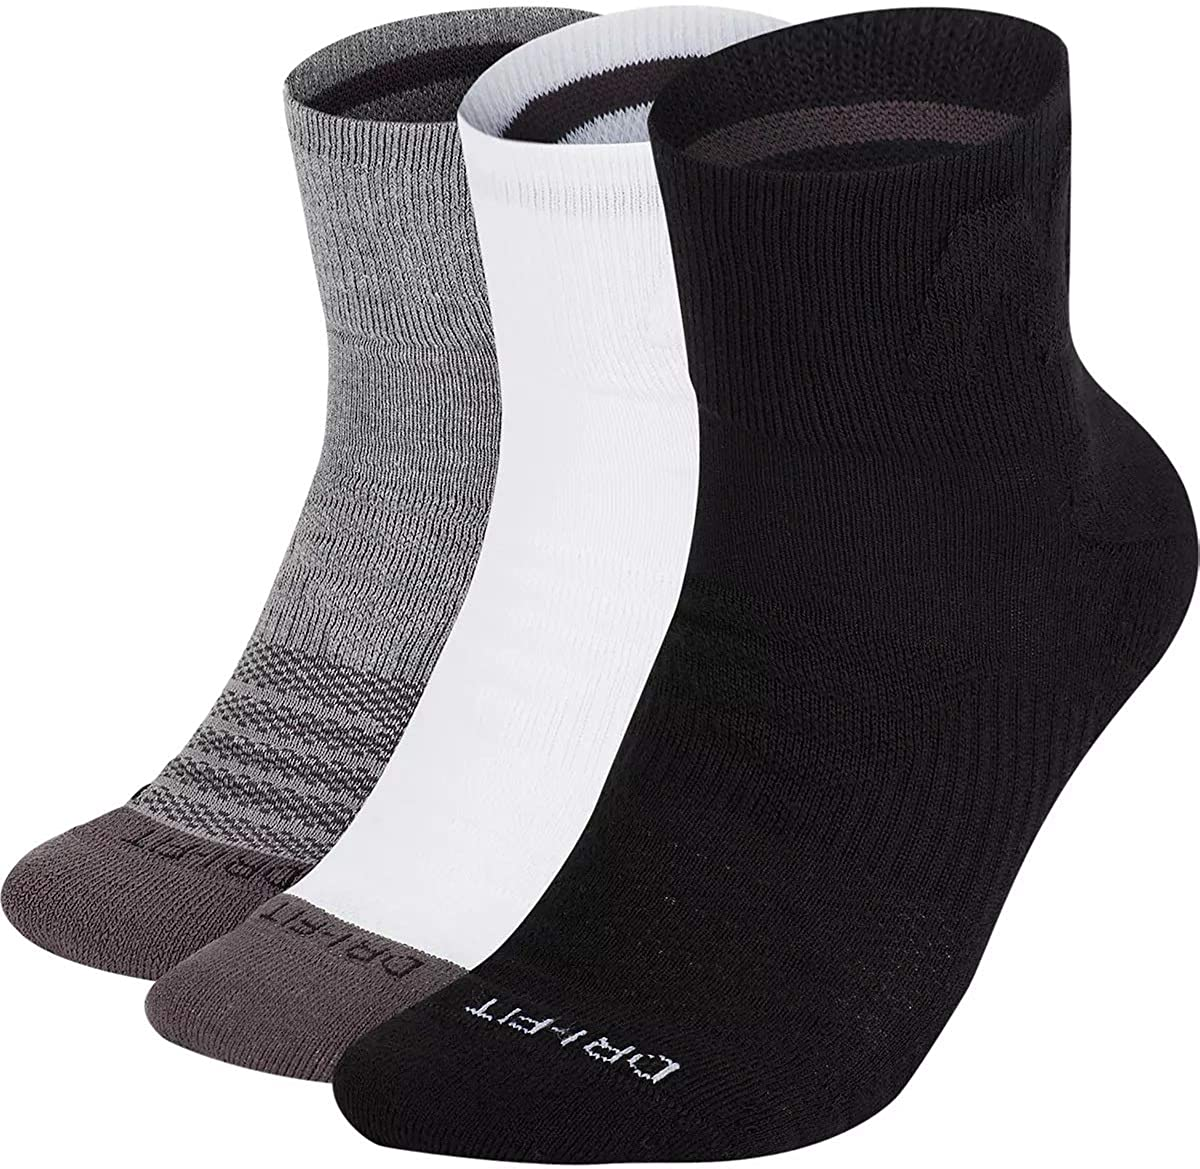 Details about  /***3 PAIR NEW GANDER MNT ALL SPORT COOL MAX WICKING CREW SOCKS WOMENS SZ M 6-10